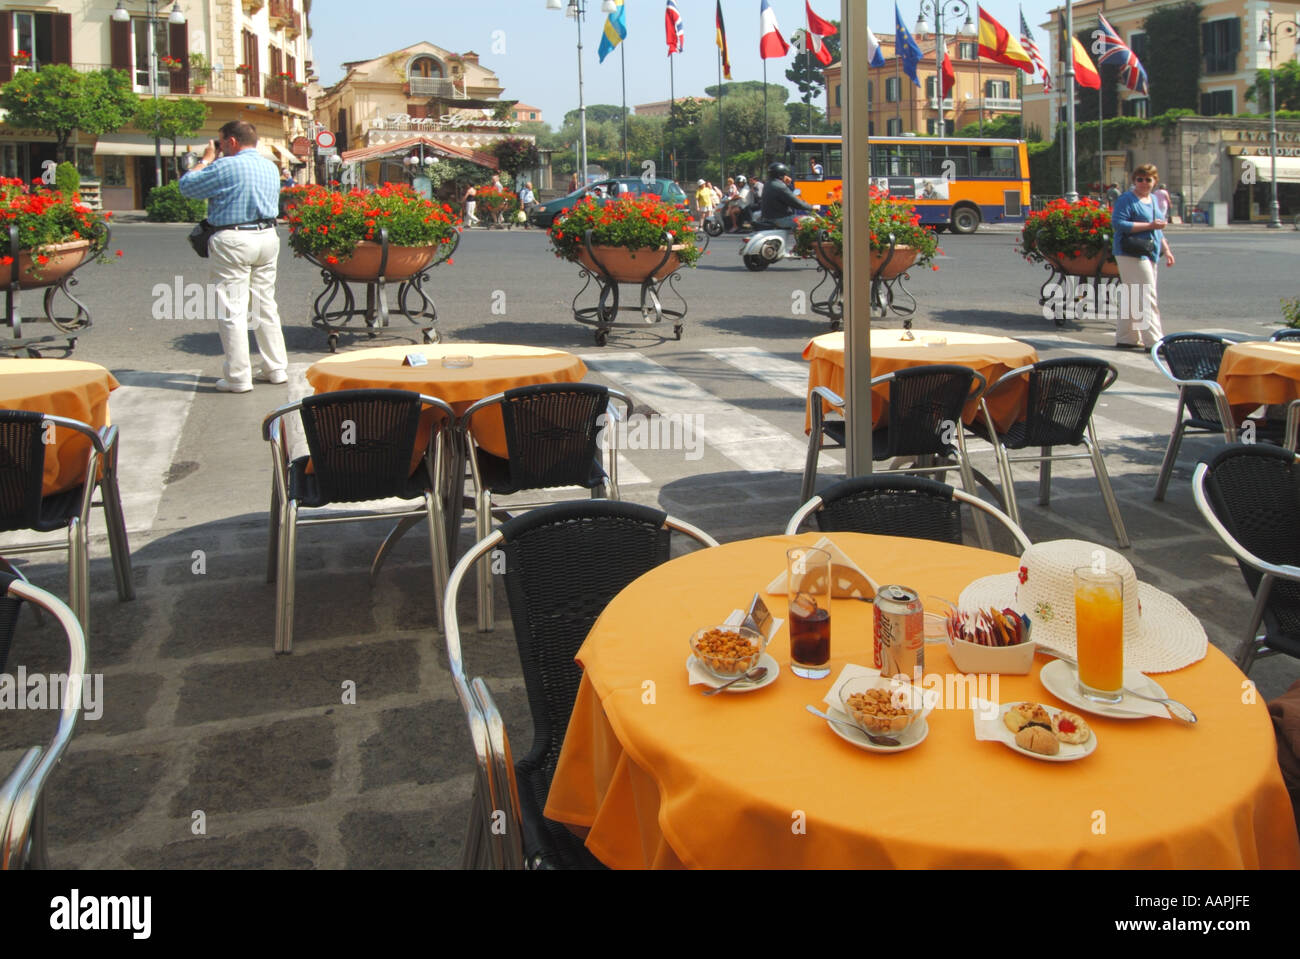 Sorrento resort Tasso Square pavement bar table with drinks and nuts with floral display tourist traffic and flags flying - Stock Image